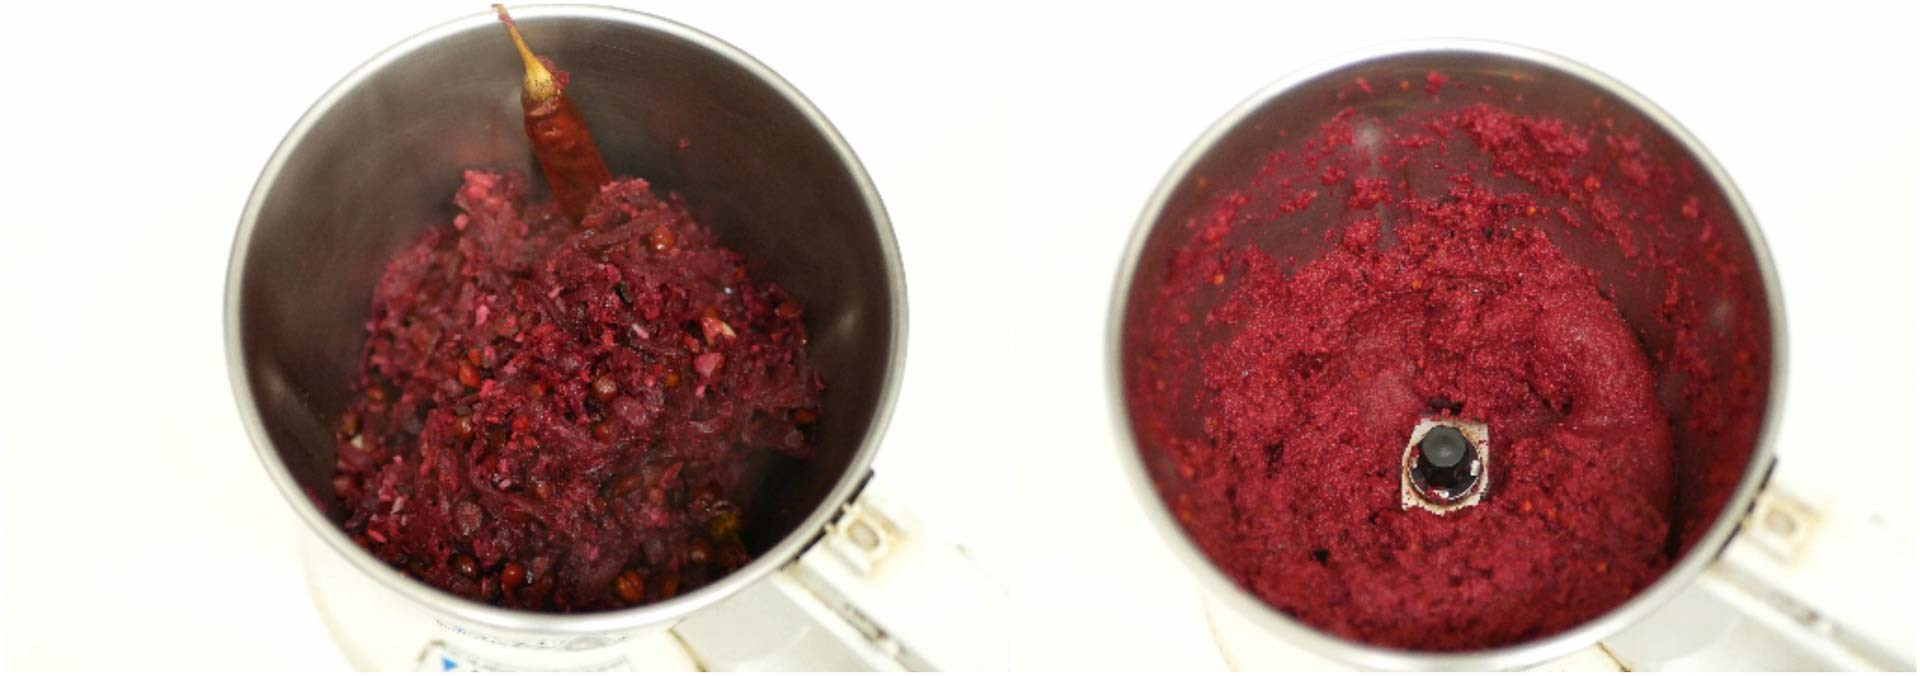 beetroot-thogayal-beetroot-thuvaiyal-recipe-6